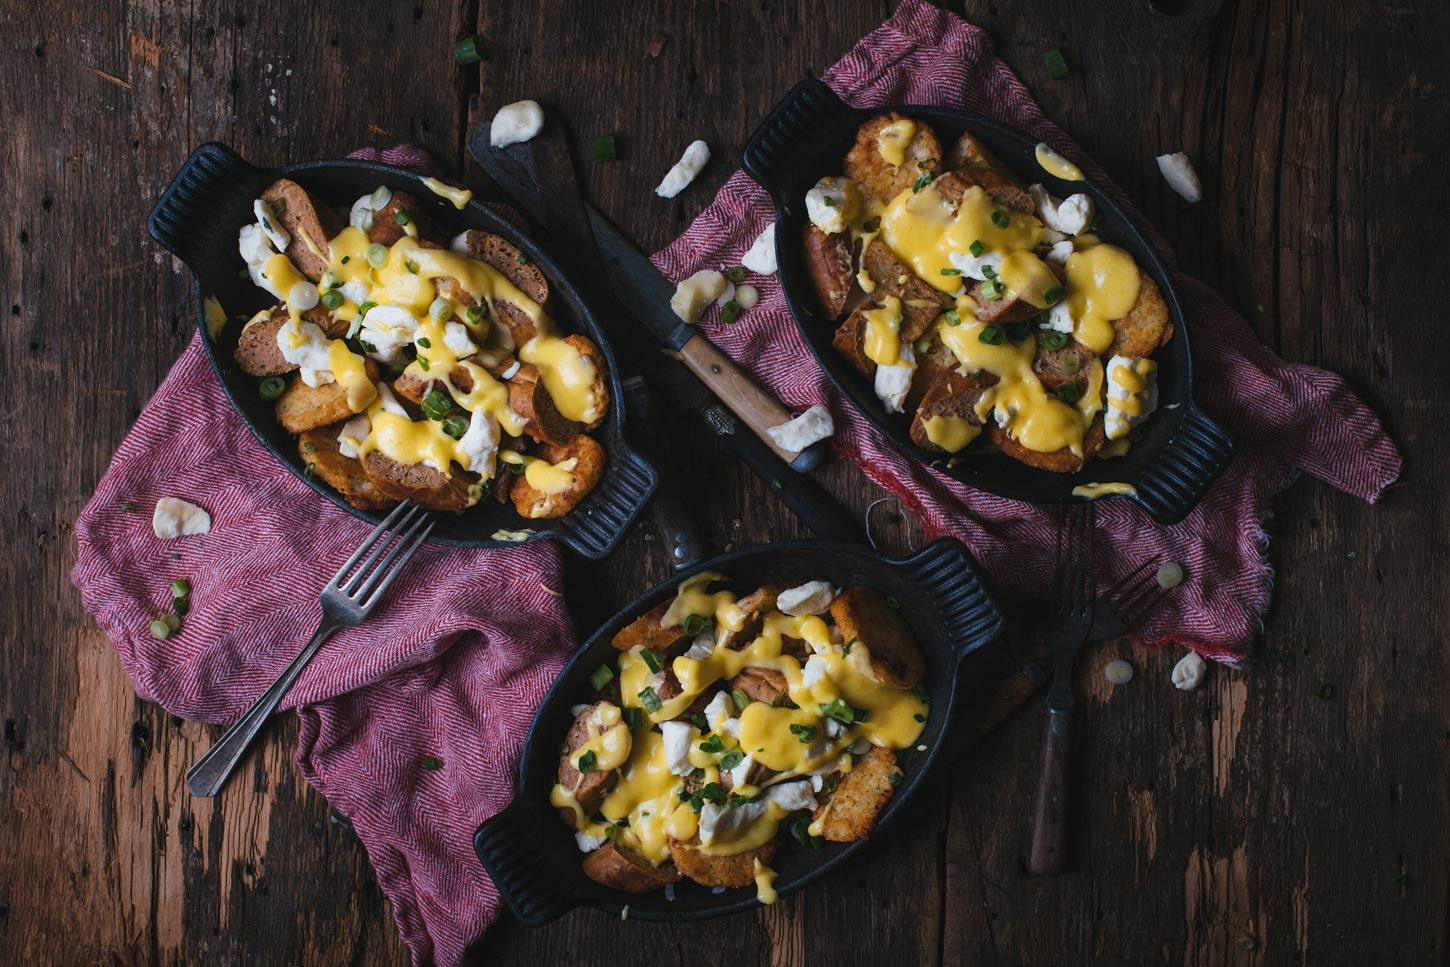 breakfast poutine with sausages, potatoes and cheese